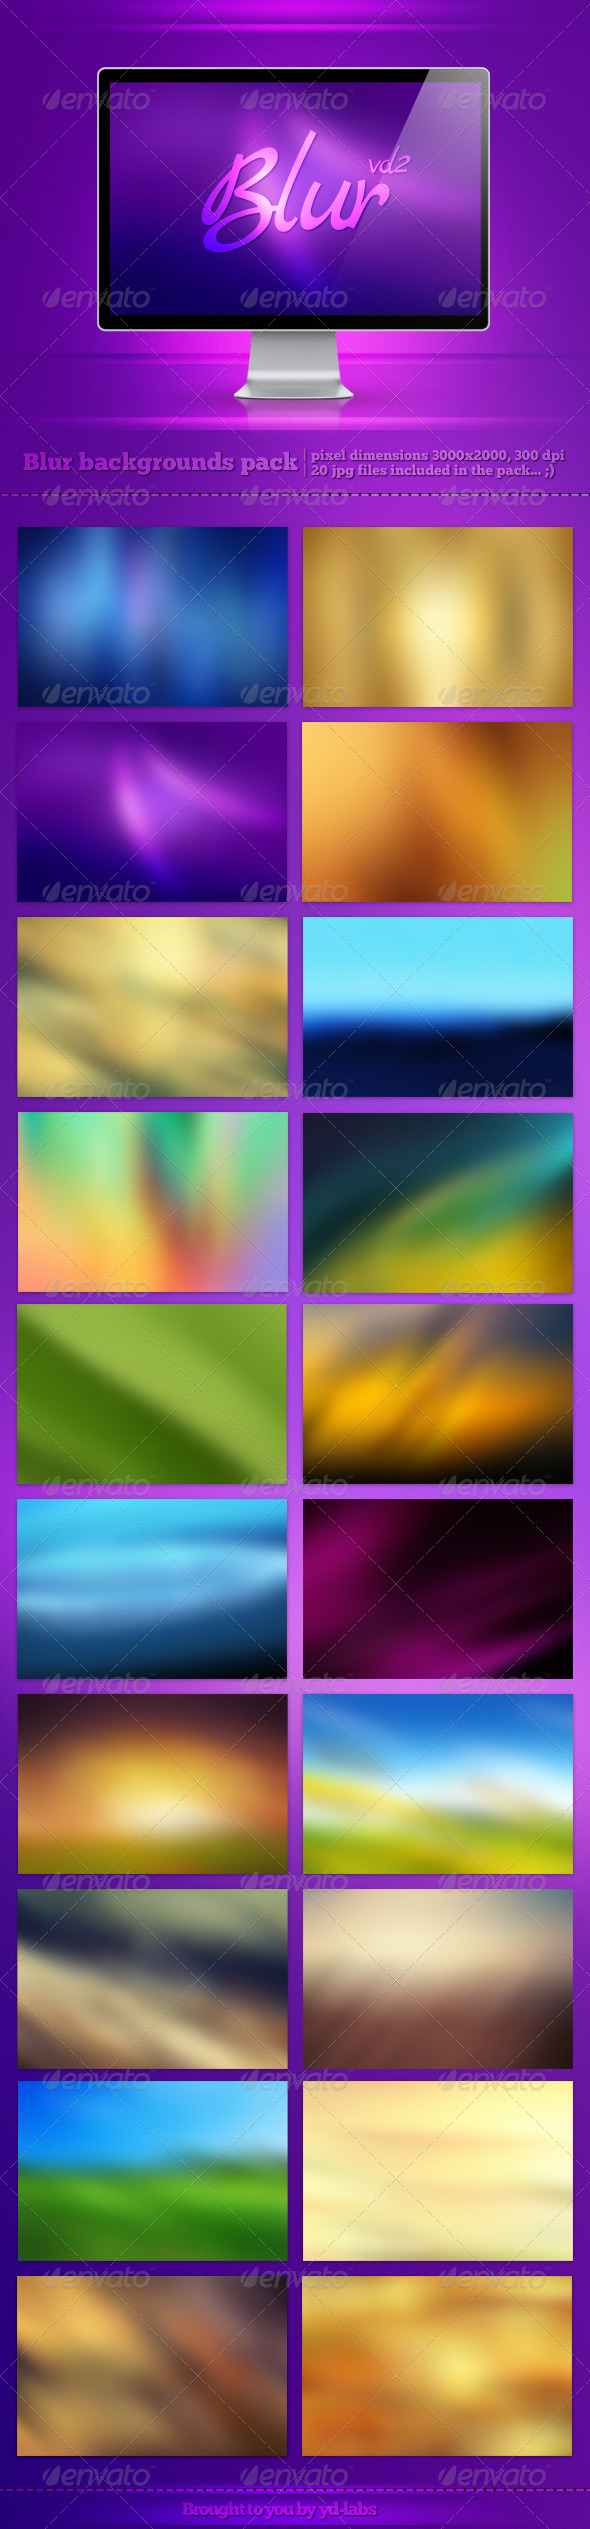 Blur Backgrounds Pack 2 - Abstract Backgrounds